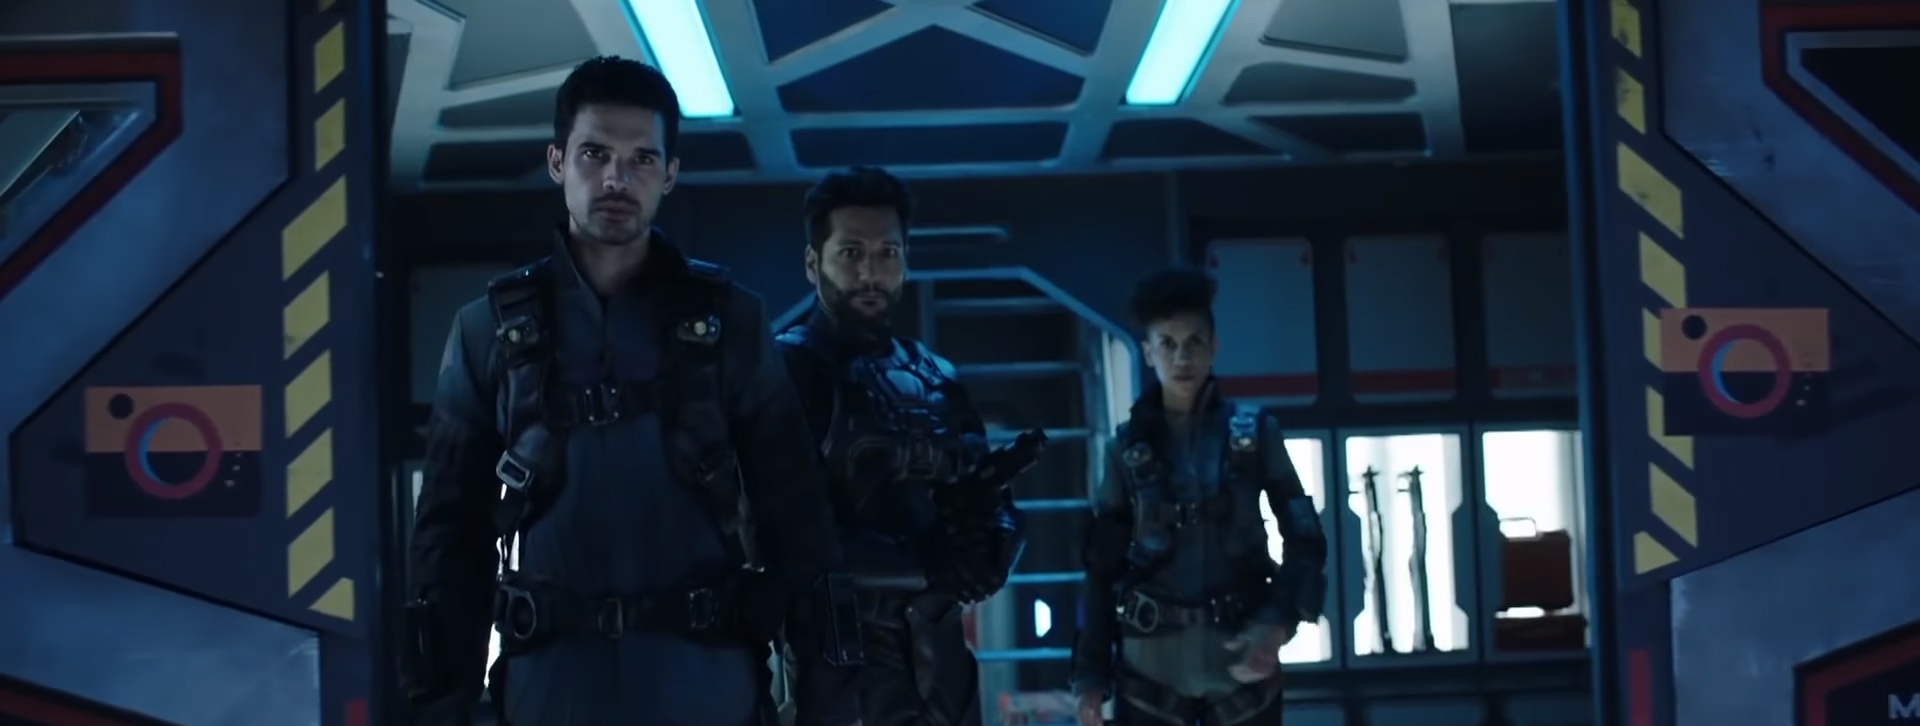 The Expanse. Image Credit: Amazon Studios.